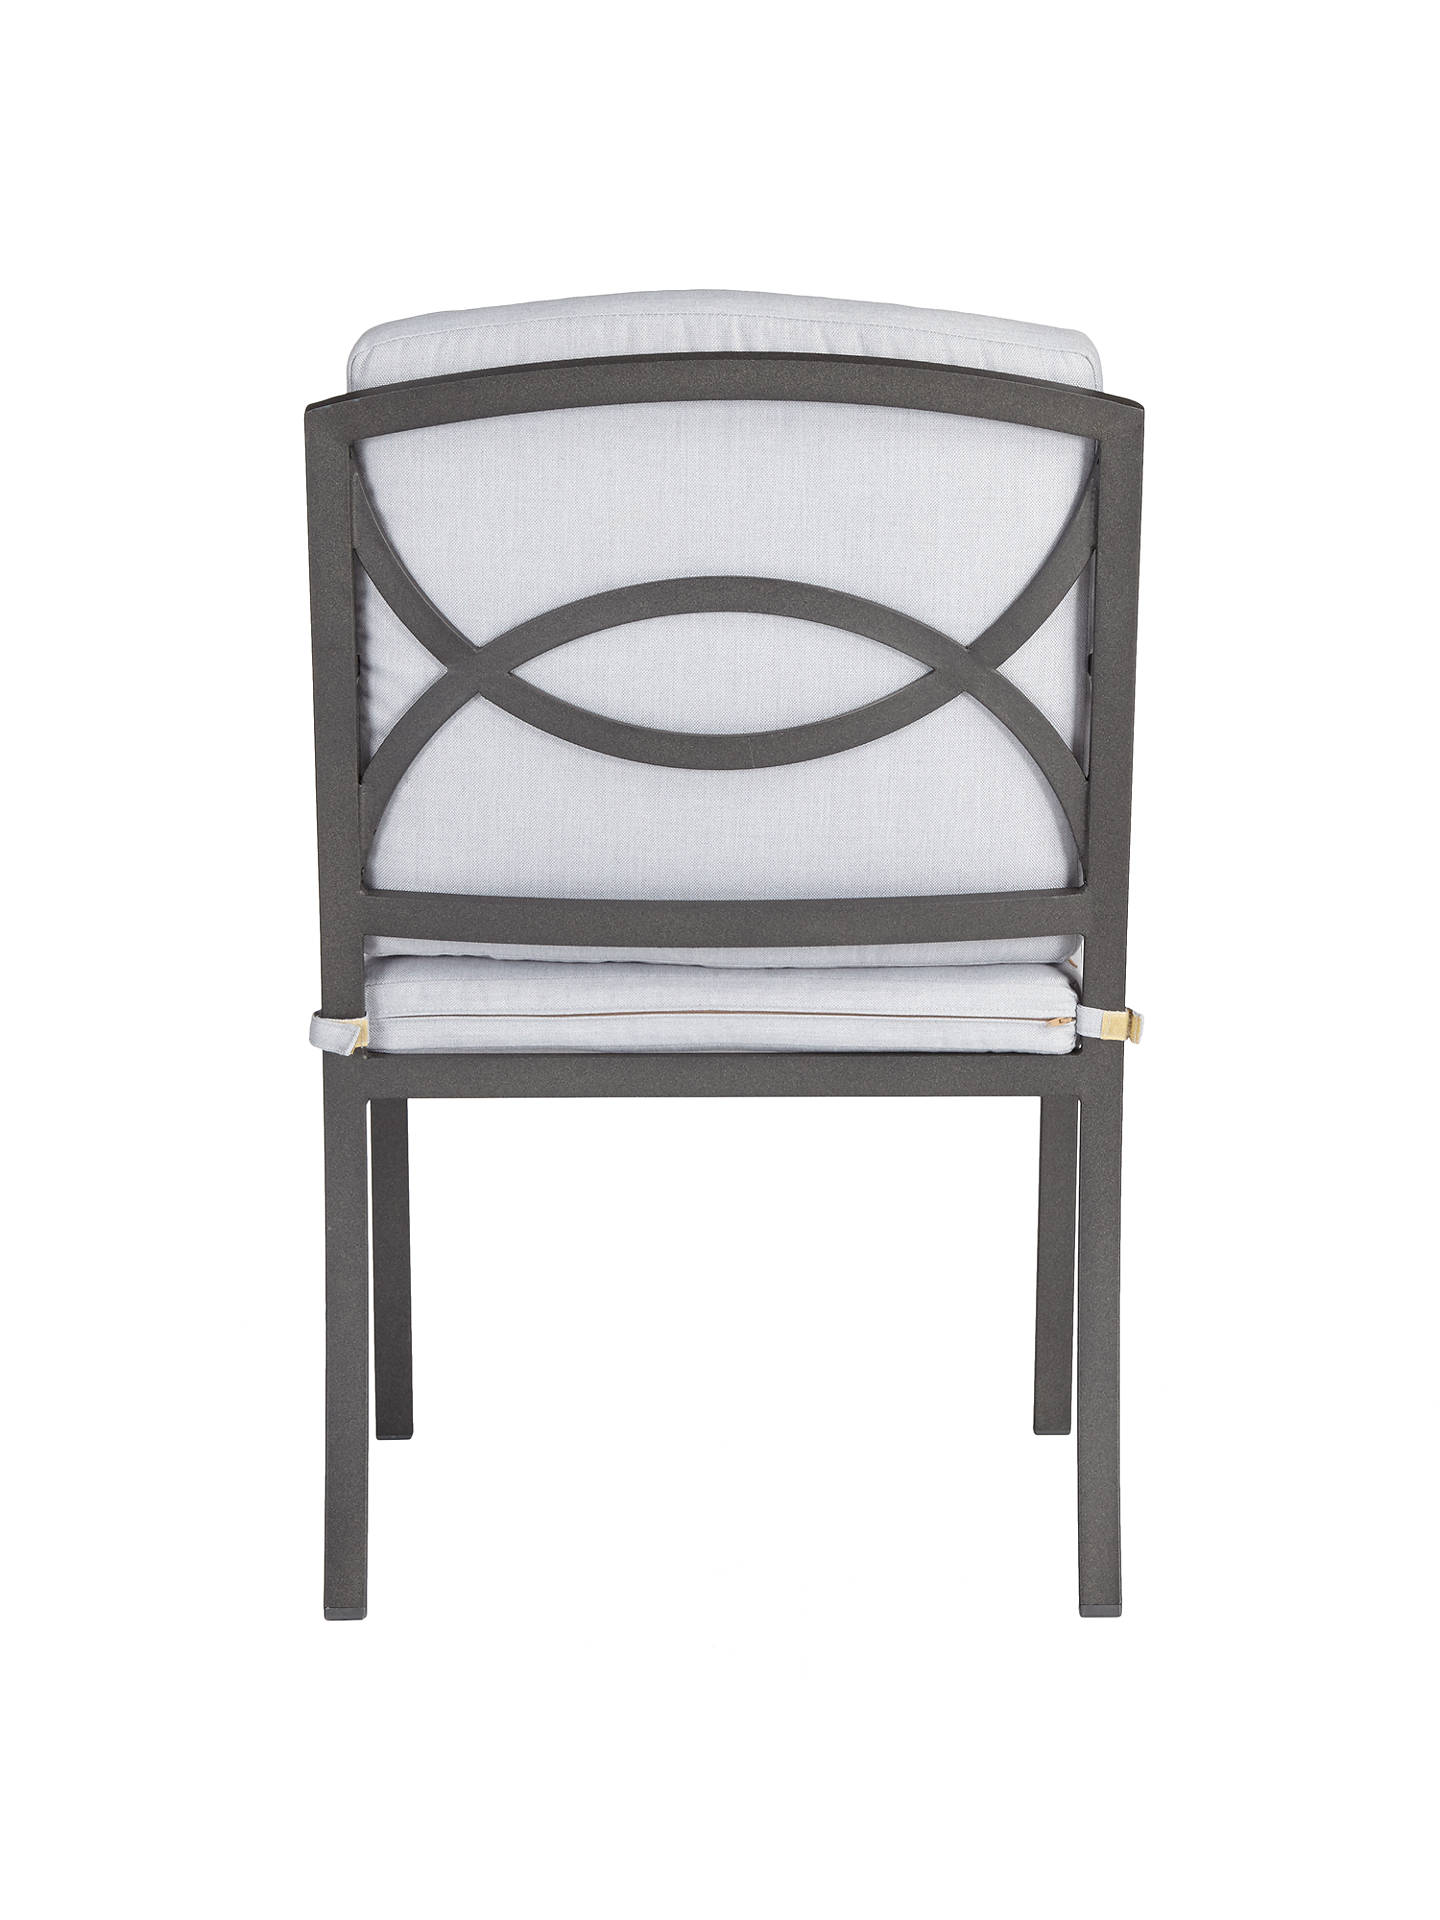 Buy John Lewis & Partners Marlow Aluminium Garden Dining Armchair, Set of 2, Black/Grey Online at johnlewis.com